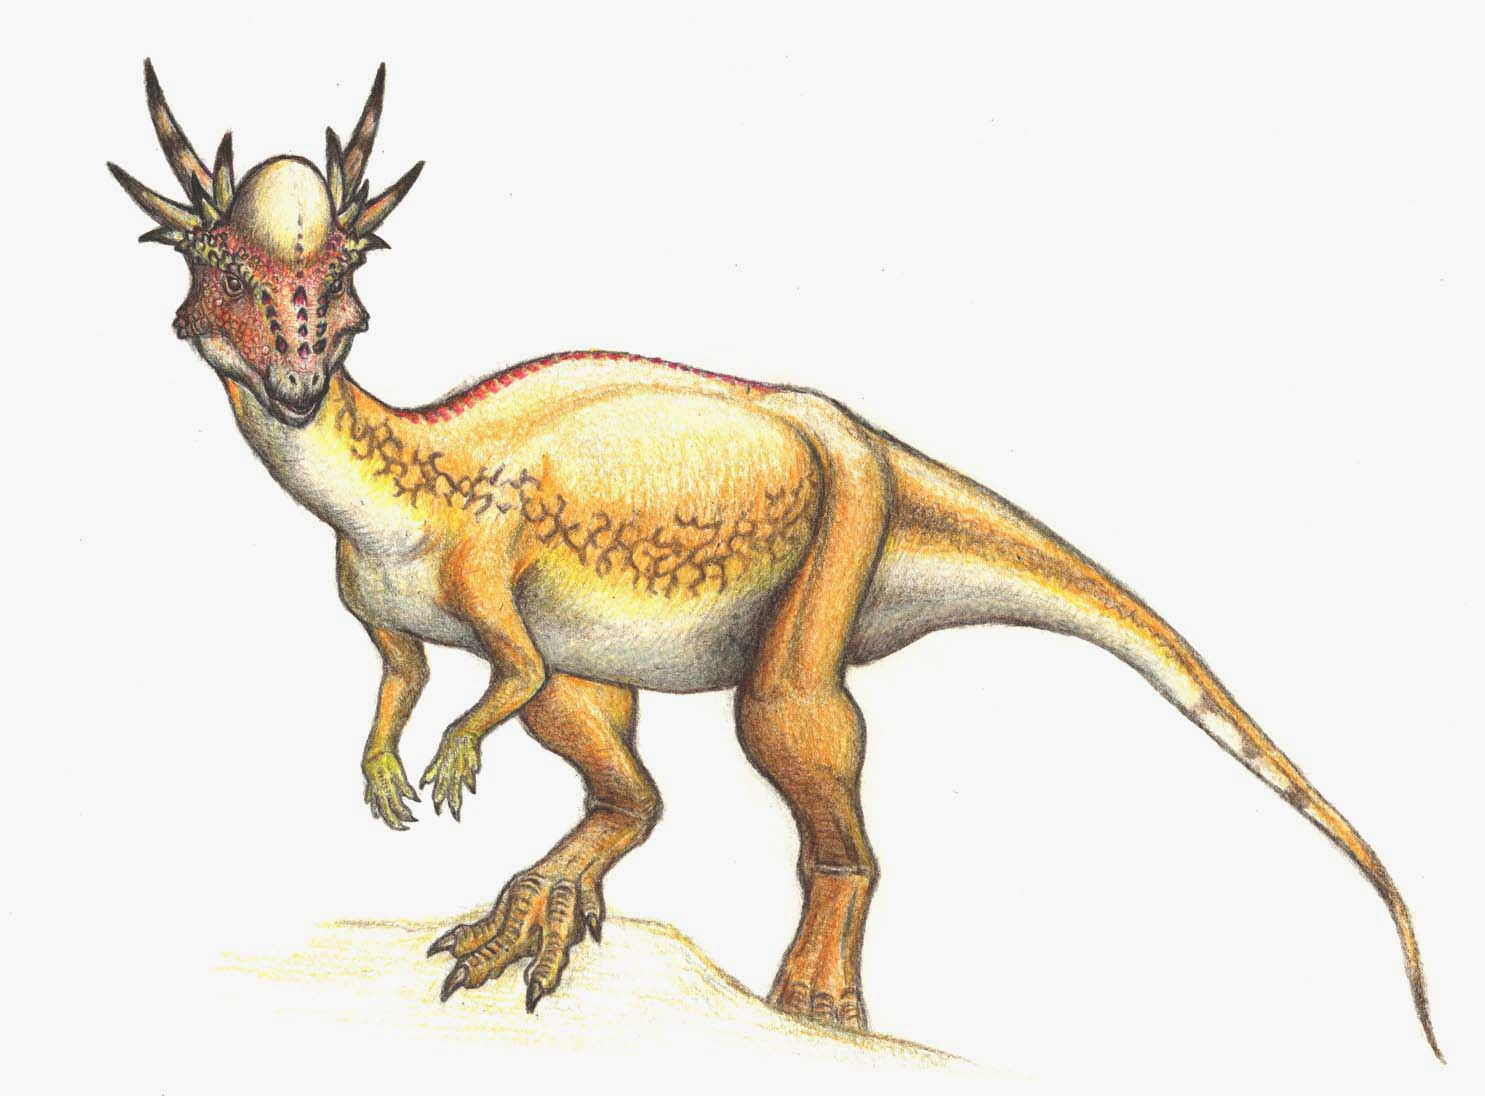 Stygimoloch Facts Dinosaurs Pictures and Facts